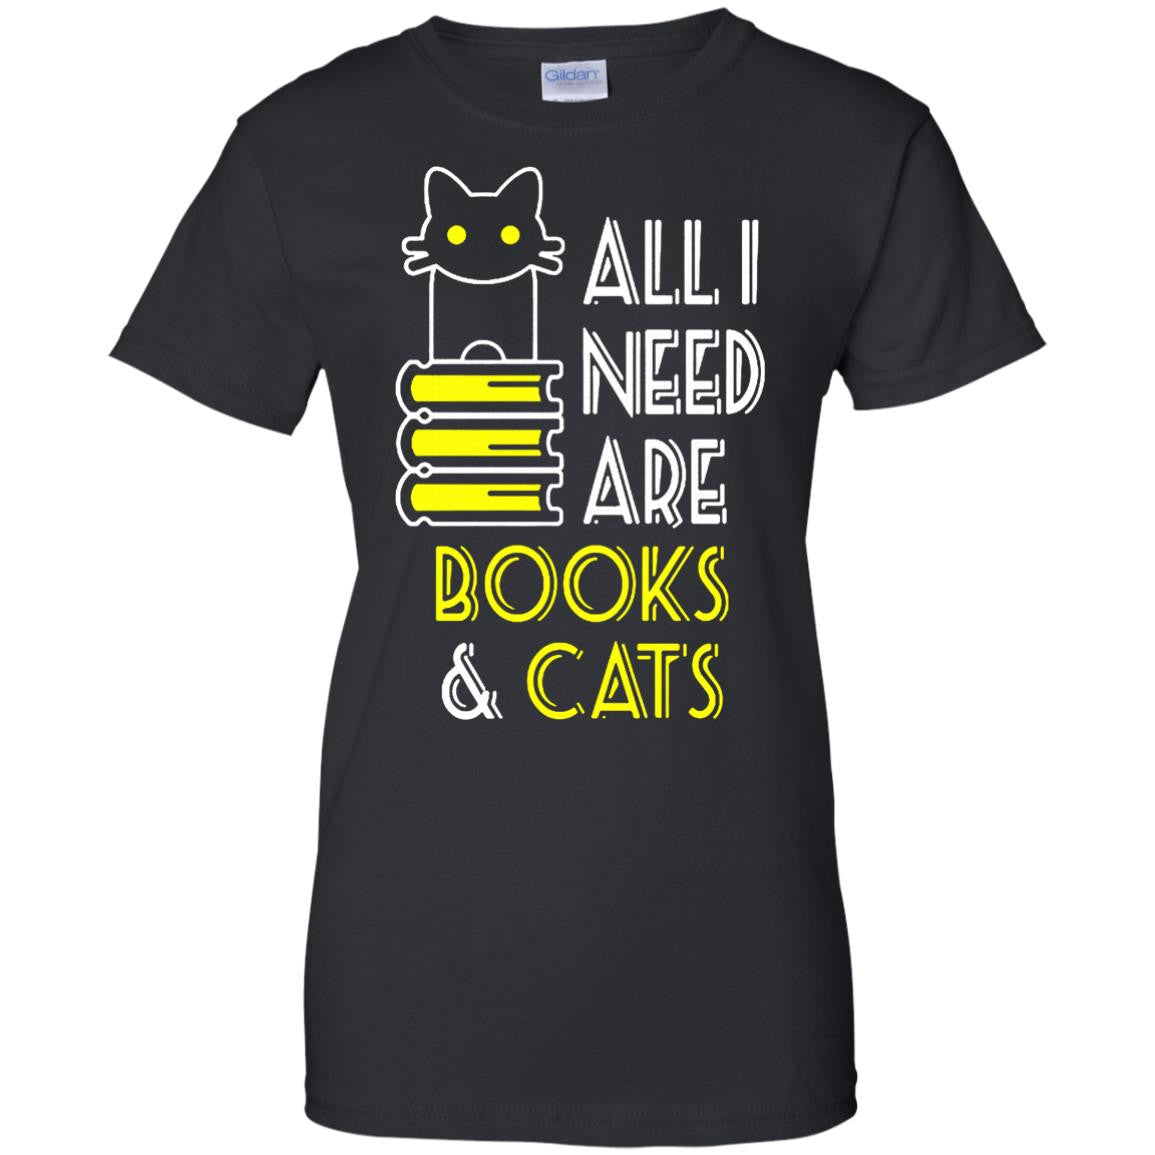 Pet Book Cats T Shirts All I Need Are Books Cats Shirts